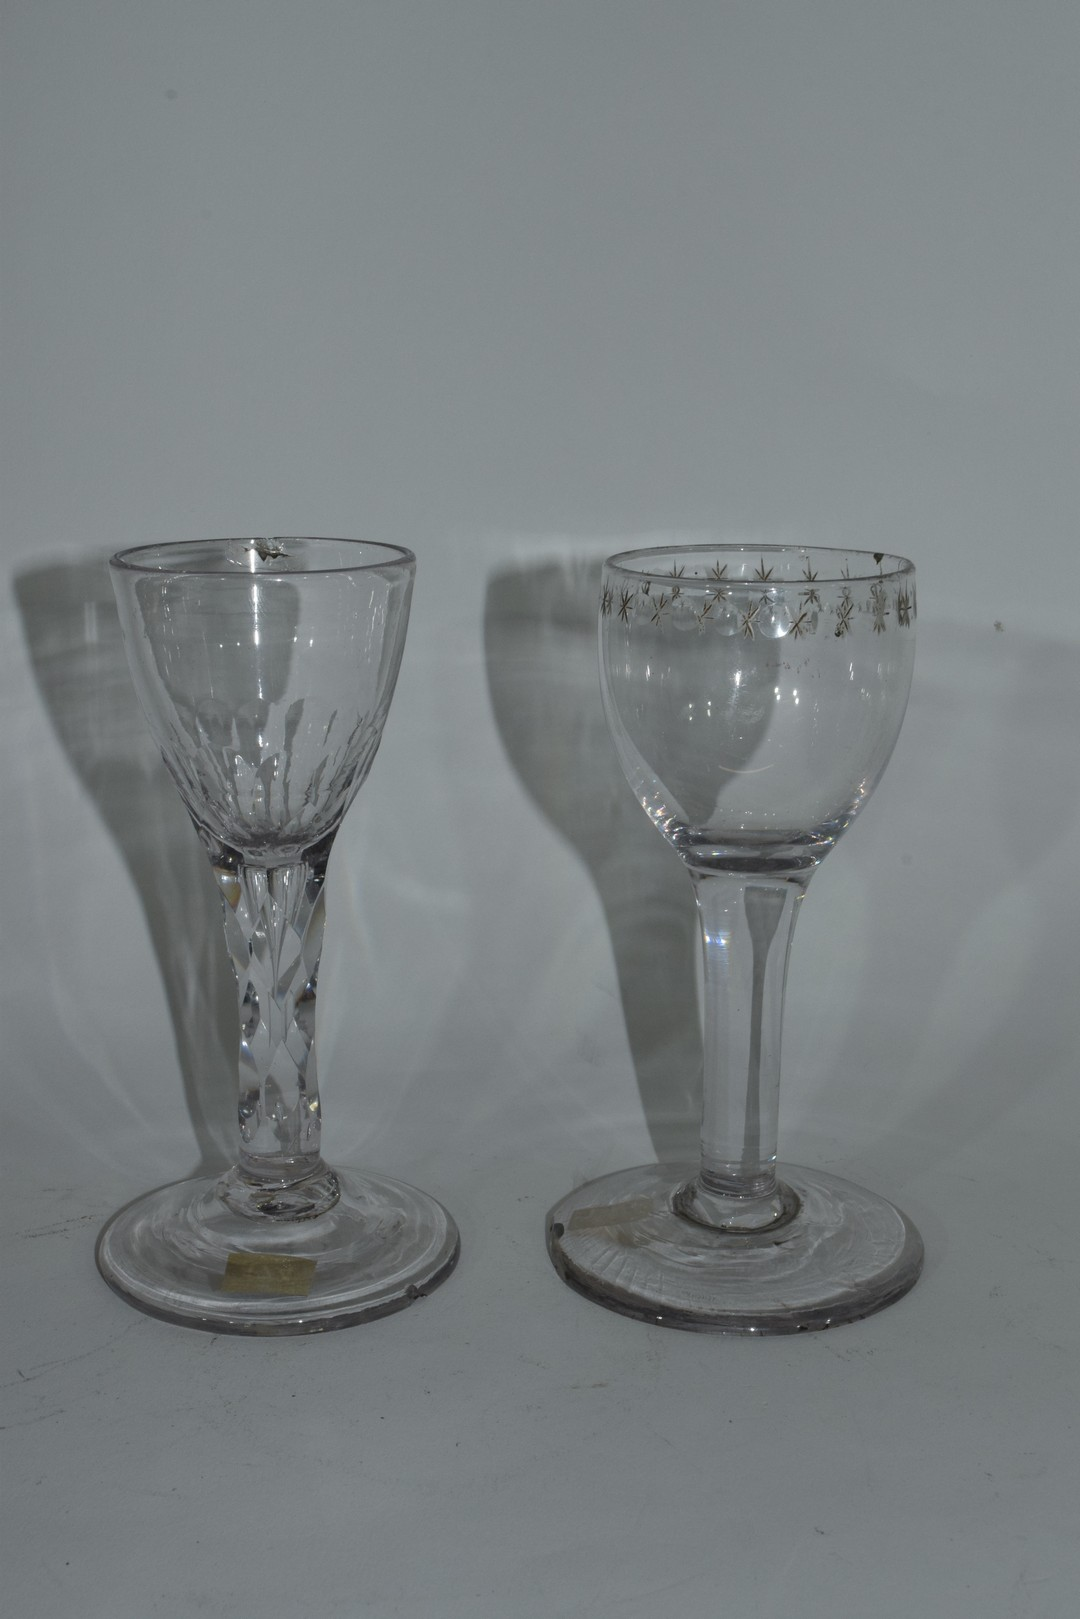 Two 18th century glasses - Image 2 of 6